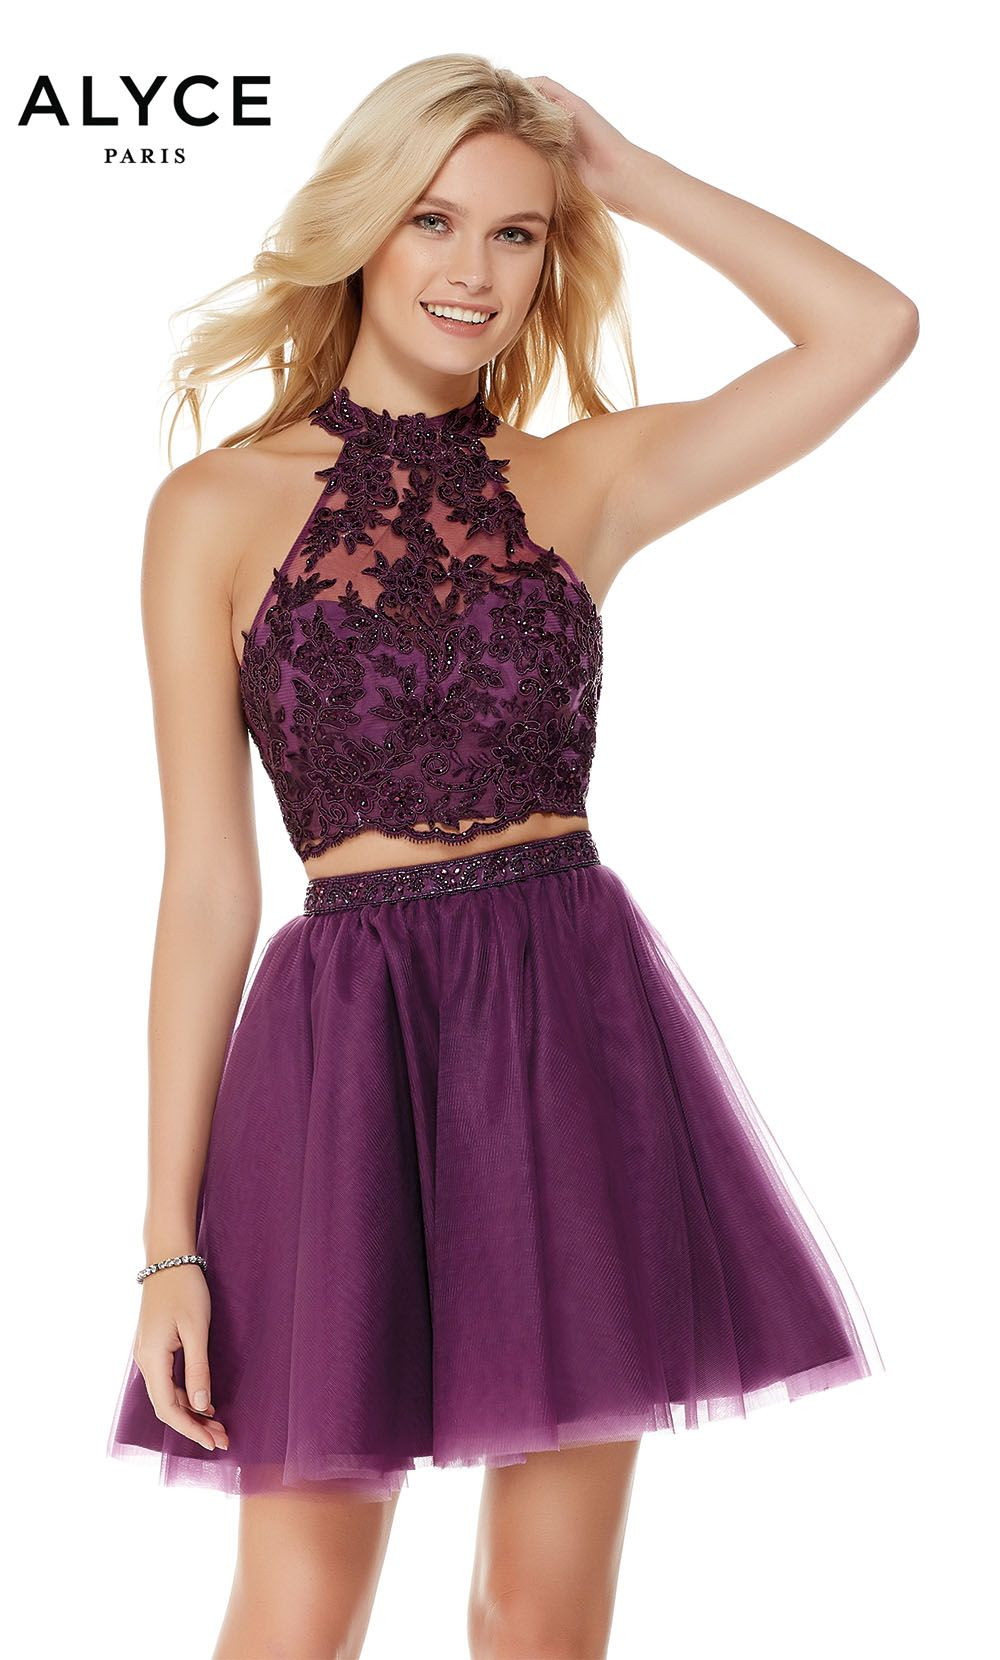 Alyce short two piece skater dress with a halter laced crop